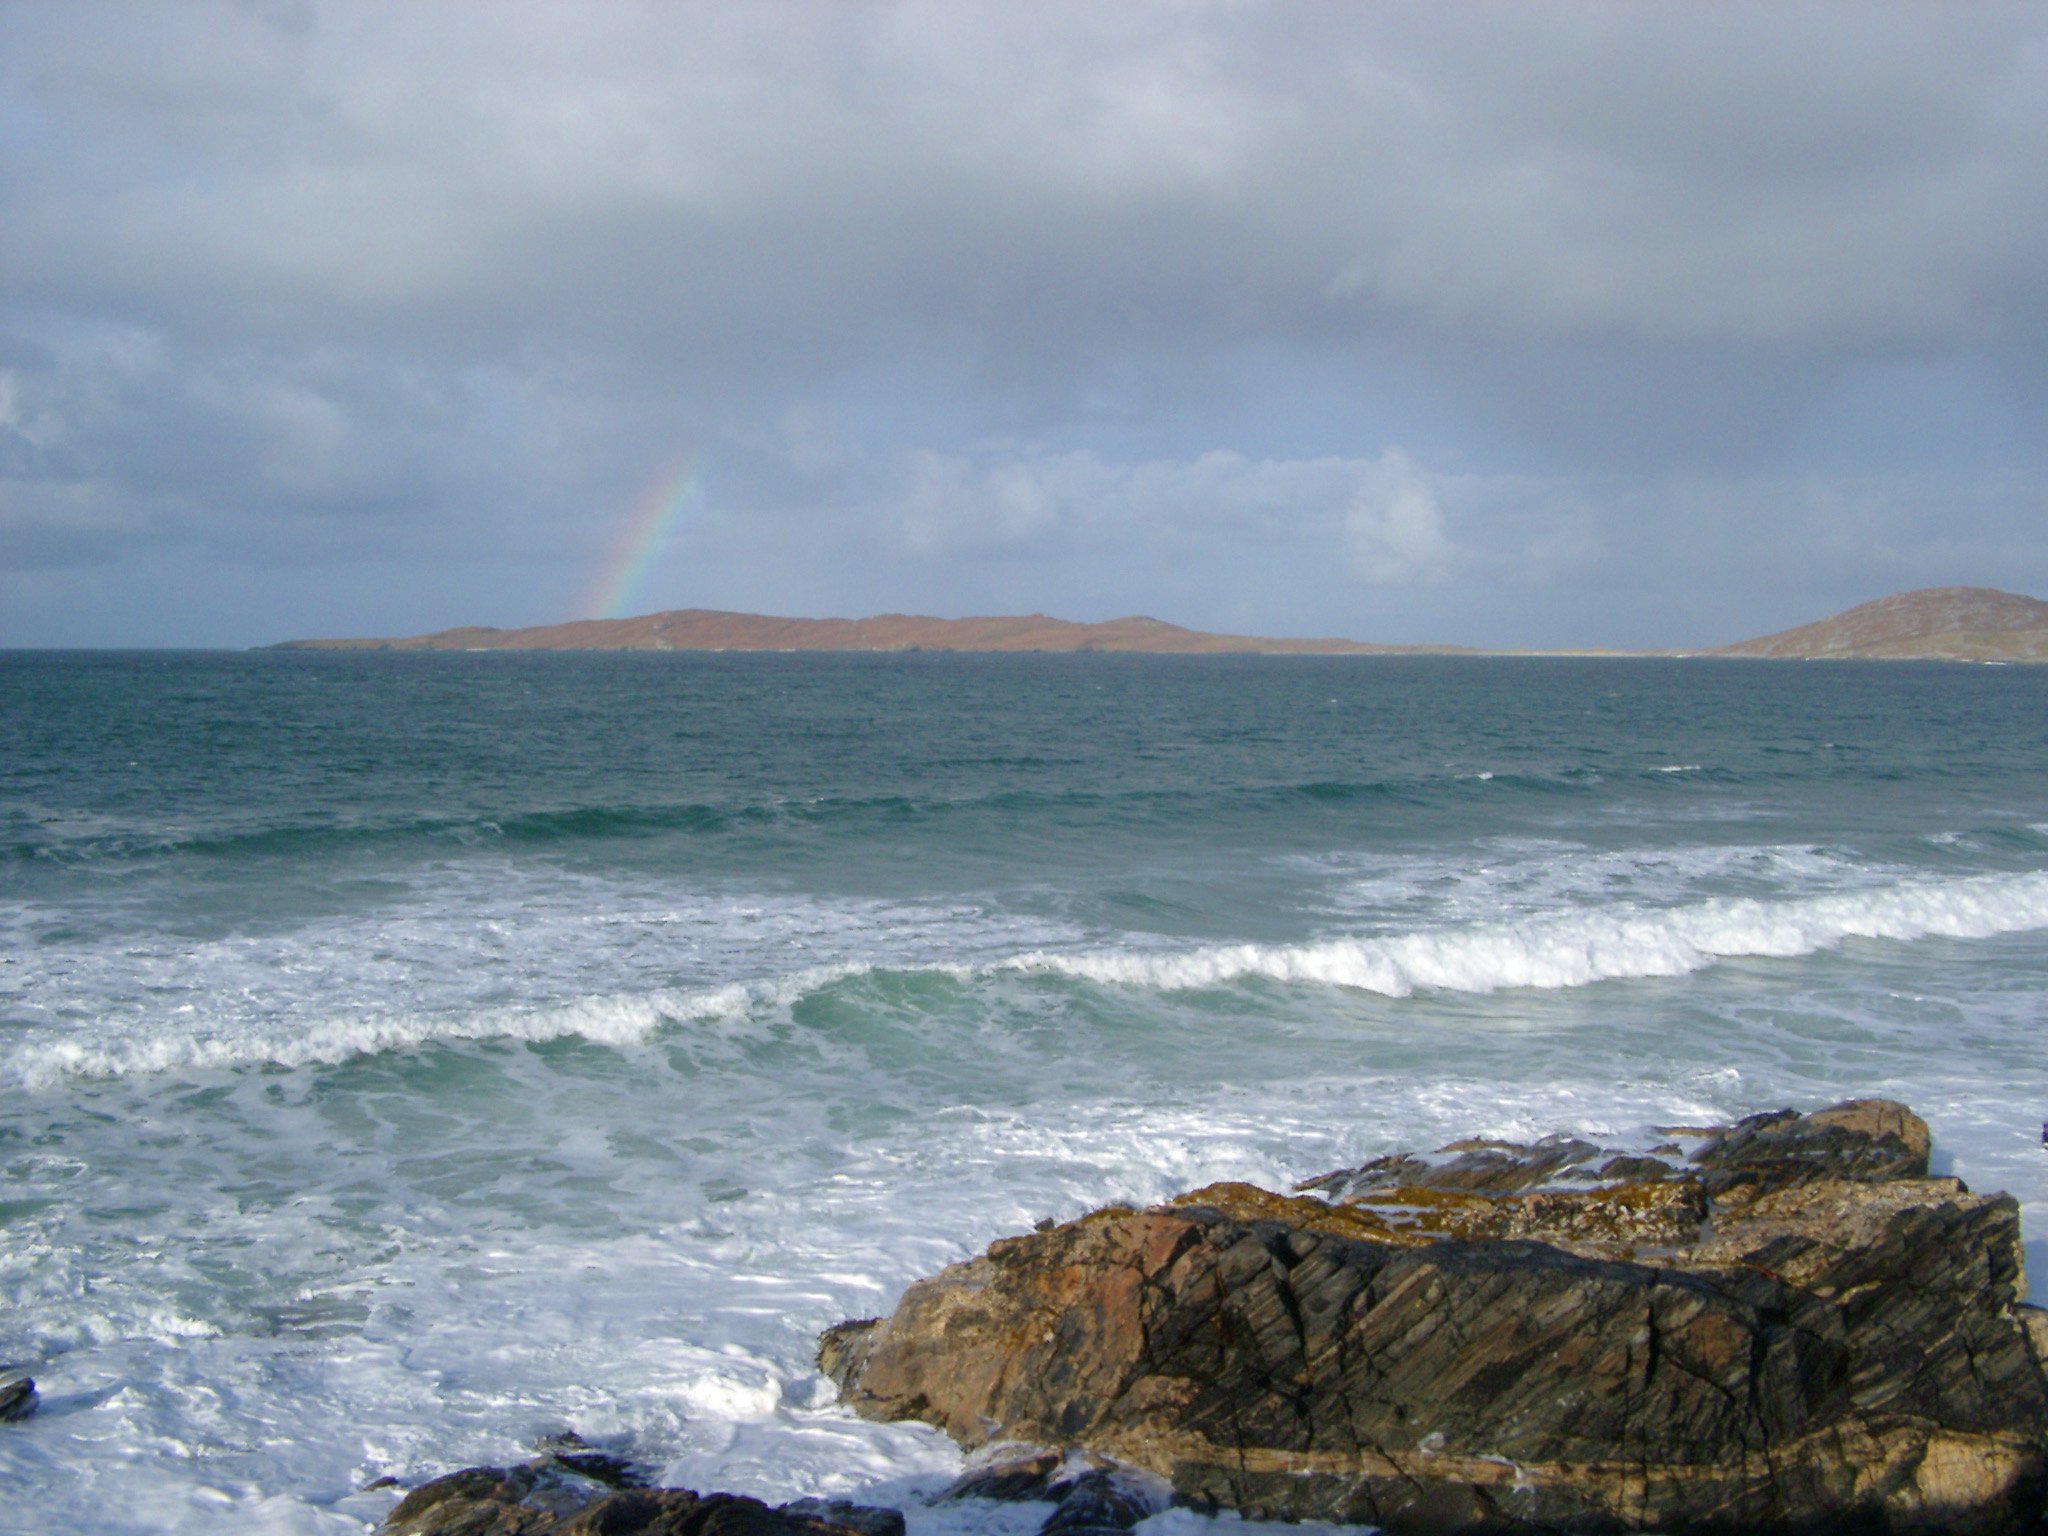 Stormy seascape with breaking white waves and a distant rainbow off the Isle of Harris